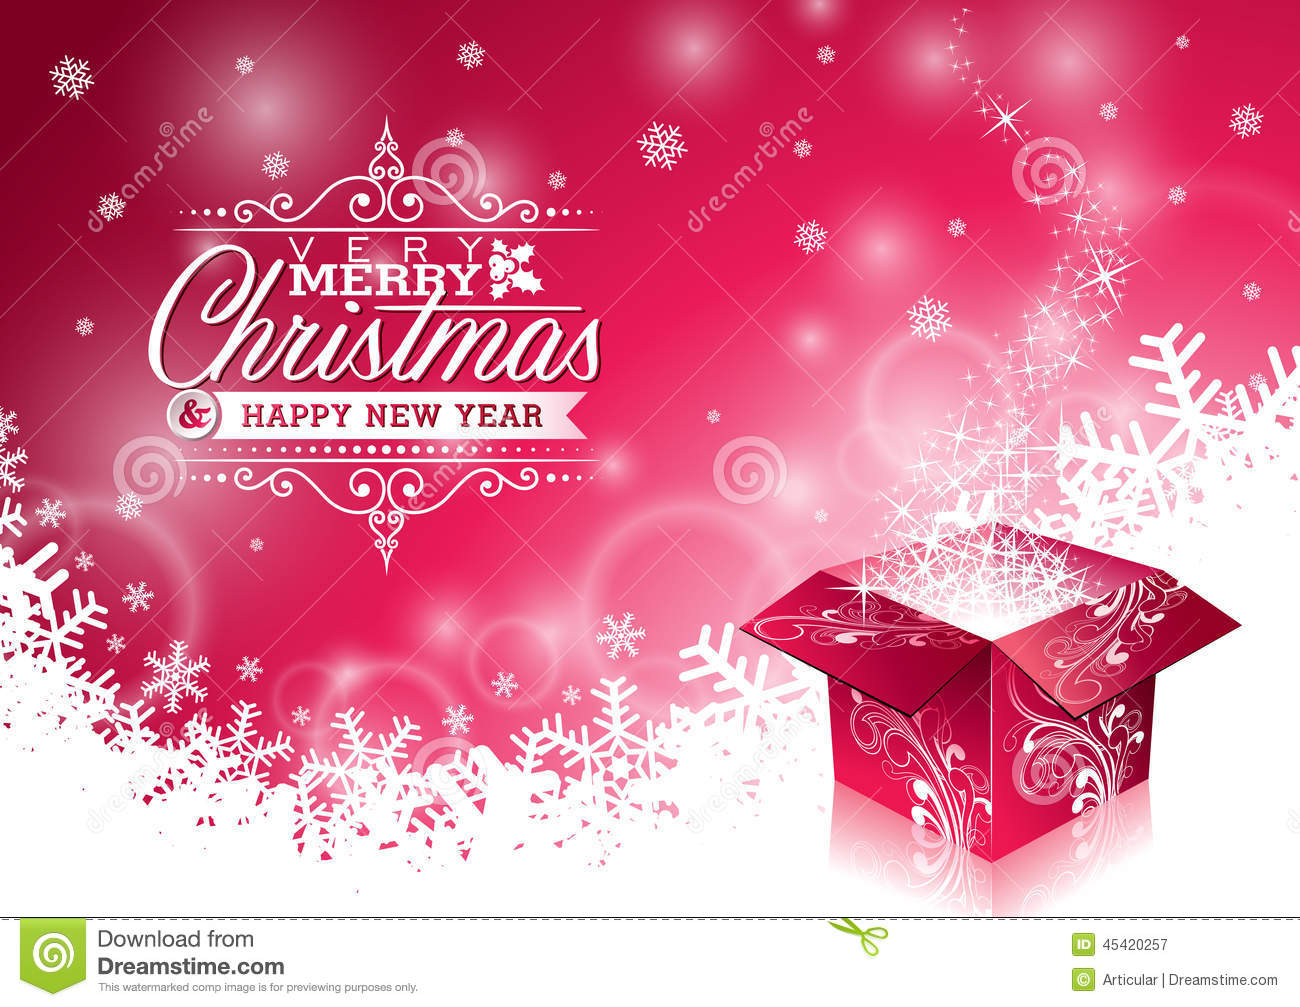 zumba christmas wallpaper